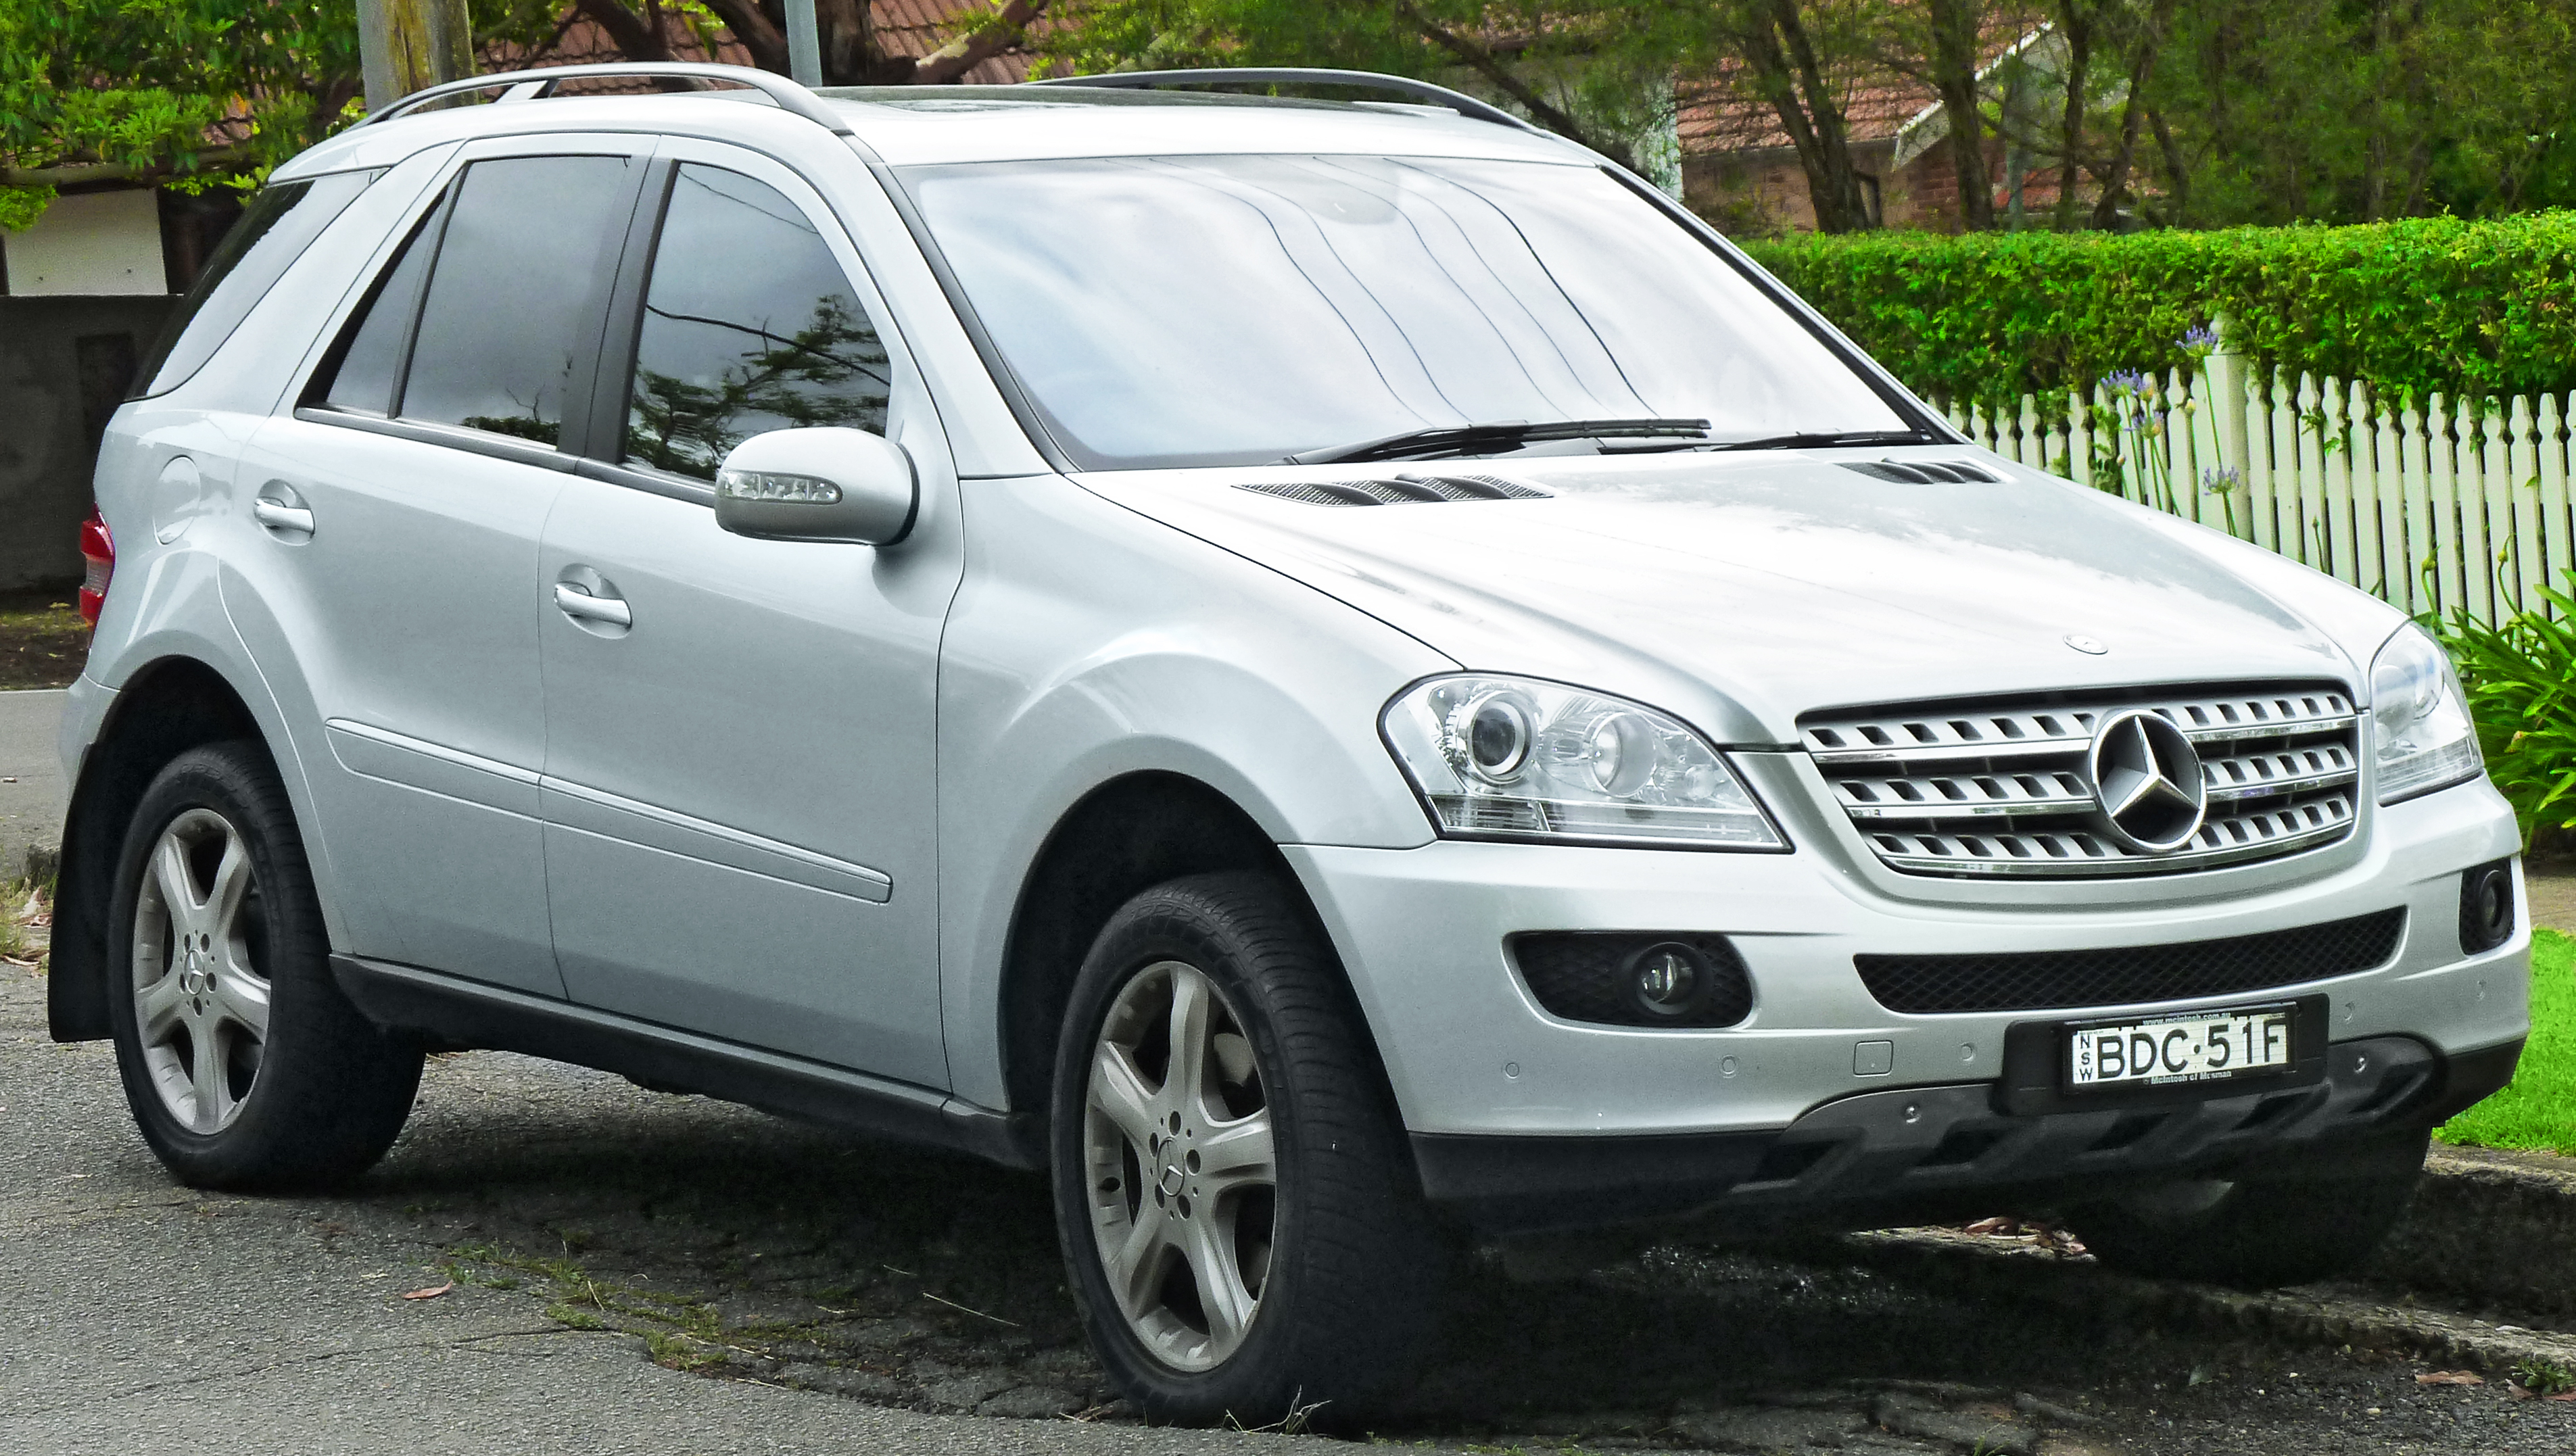 mercedes benz ml 320 cdi photos reviews news specs. Black Bedroom Furniture Sets. Home Design Ideas